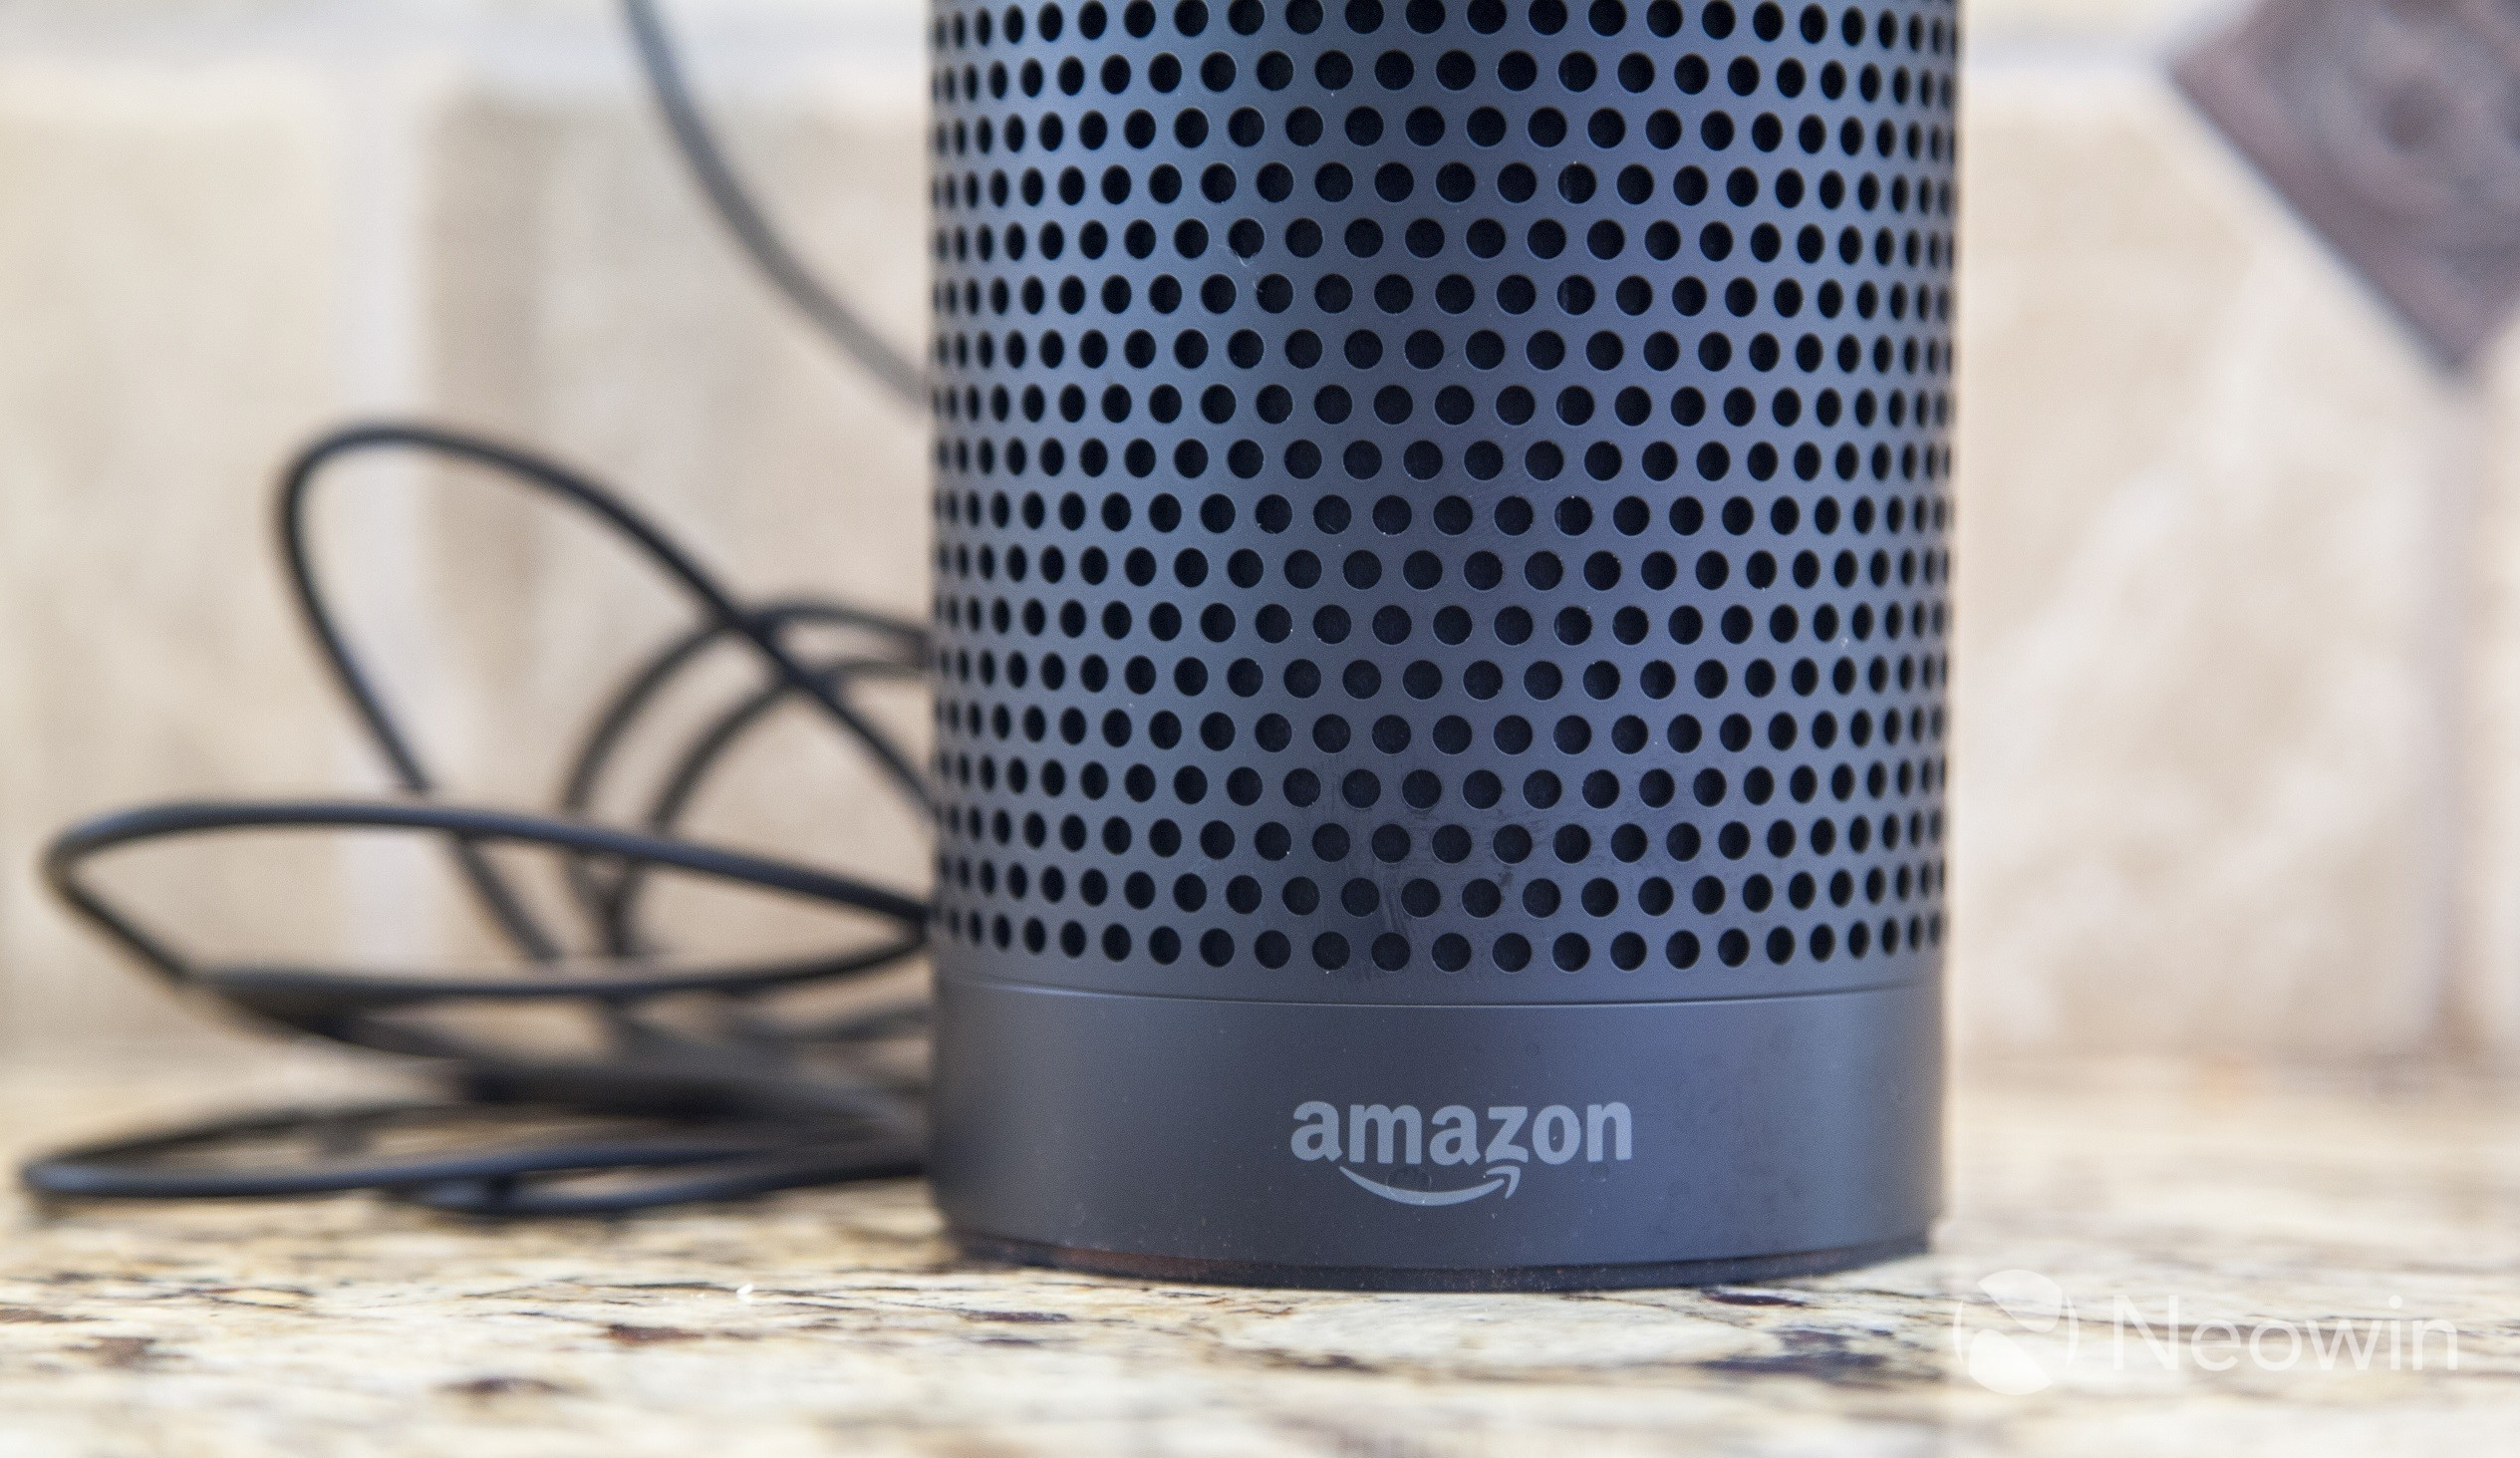 Amazon could drop 8 new Alexa-powered devices, including a microwave